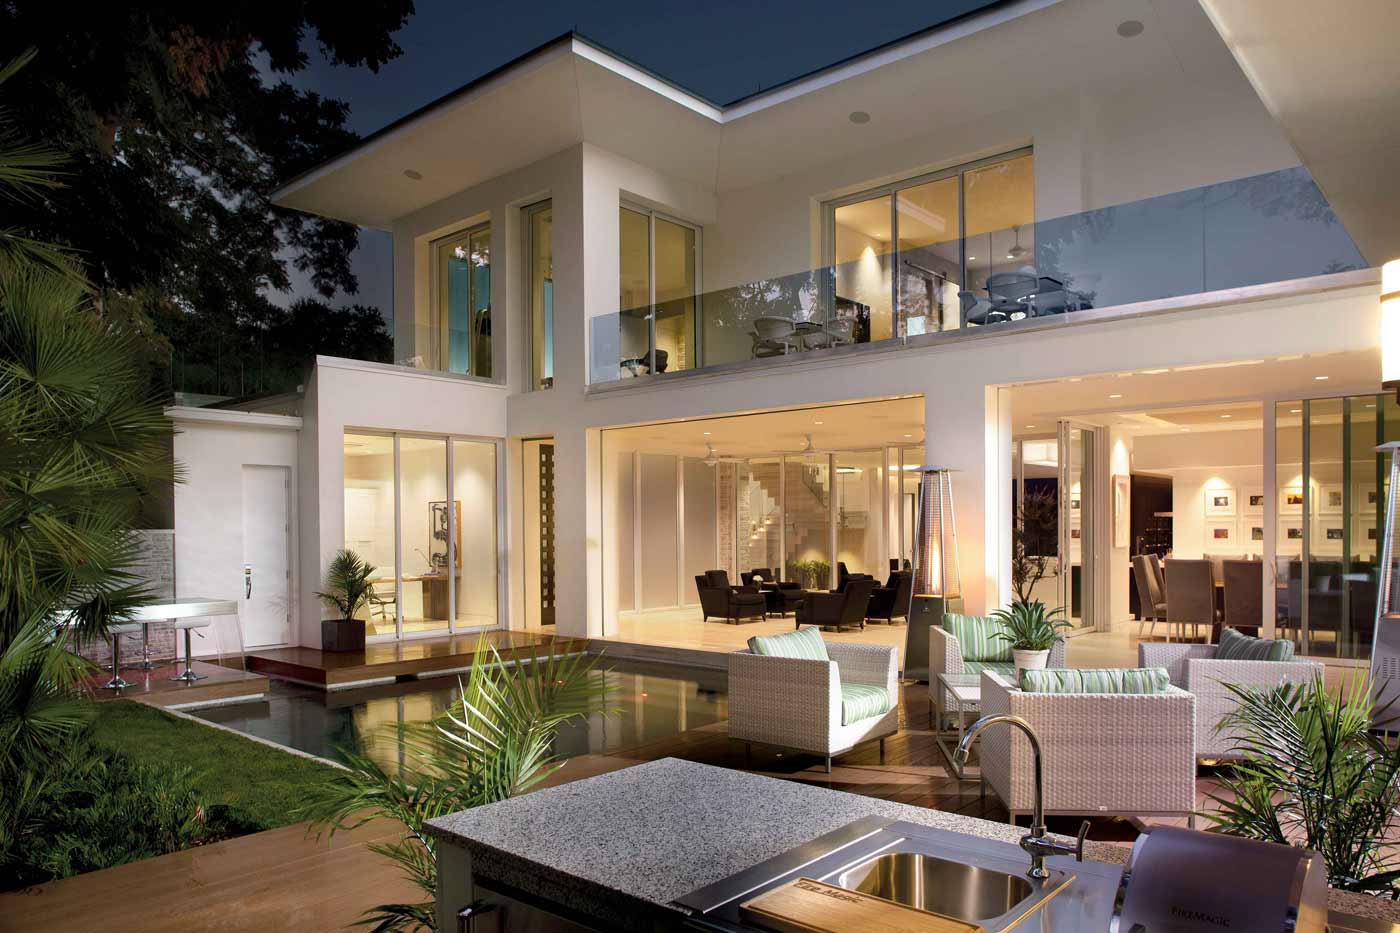 Outdoor spaces enhance entertaining phil kean design group for New american style house plans